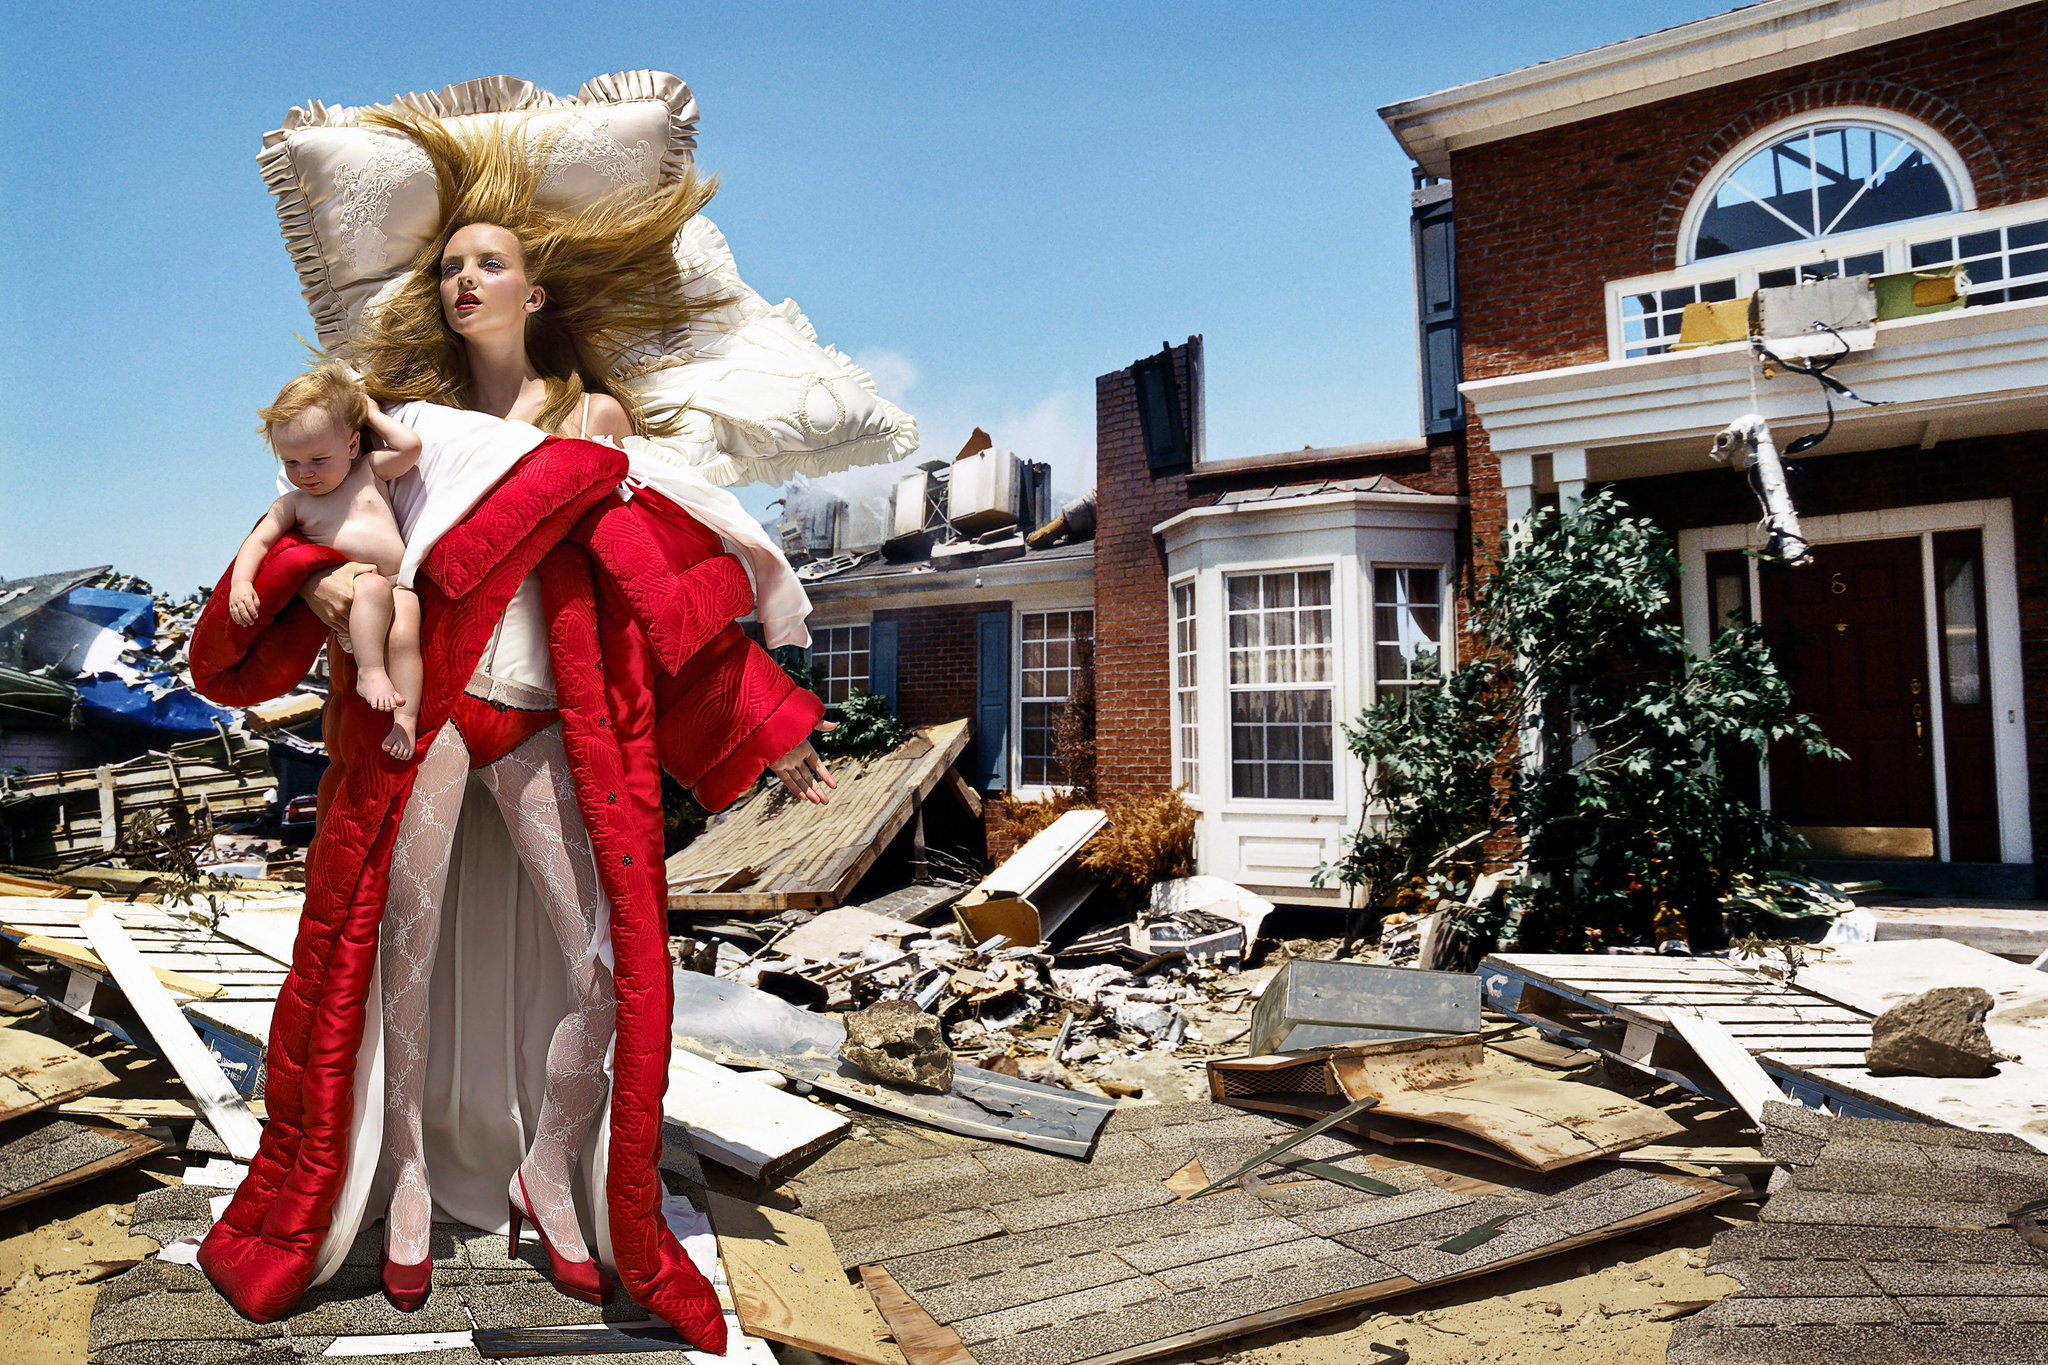 David Lachapelle, The House at the End of the World, 2005 (Viktor and Rolf duvet/pillow dress) https://t.co/vIZCAk9z4e